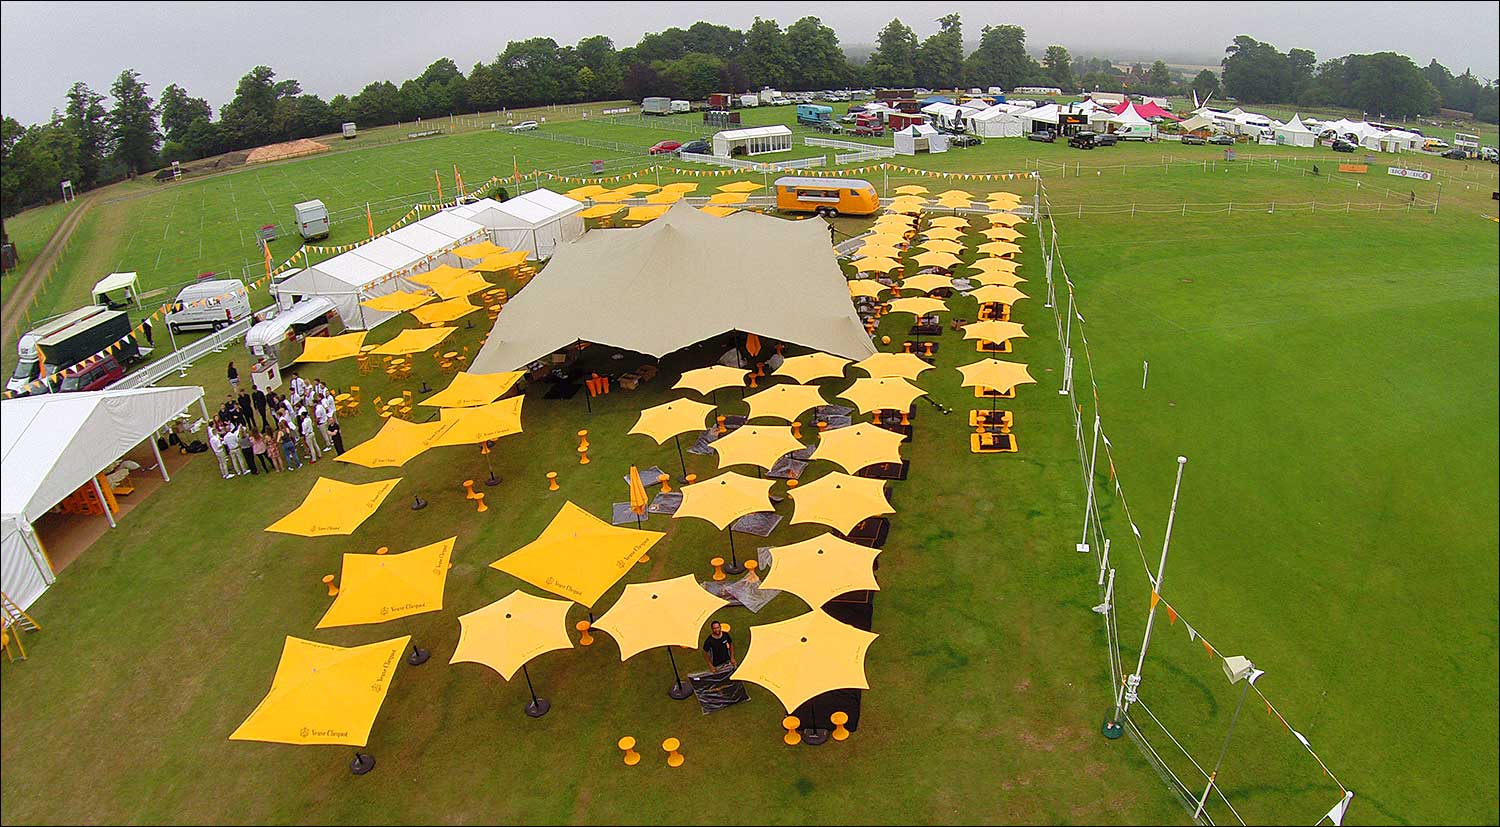 Aerial Photography for Events